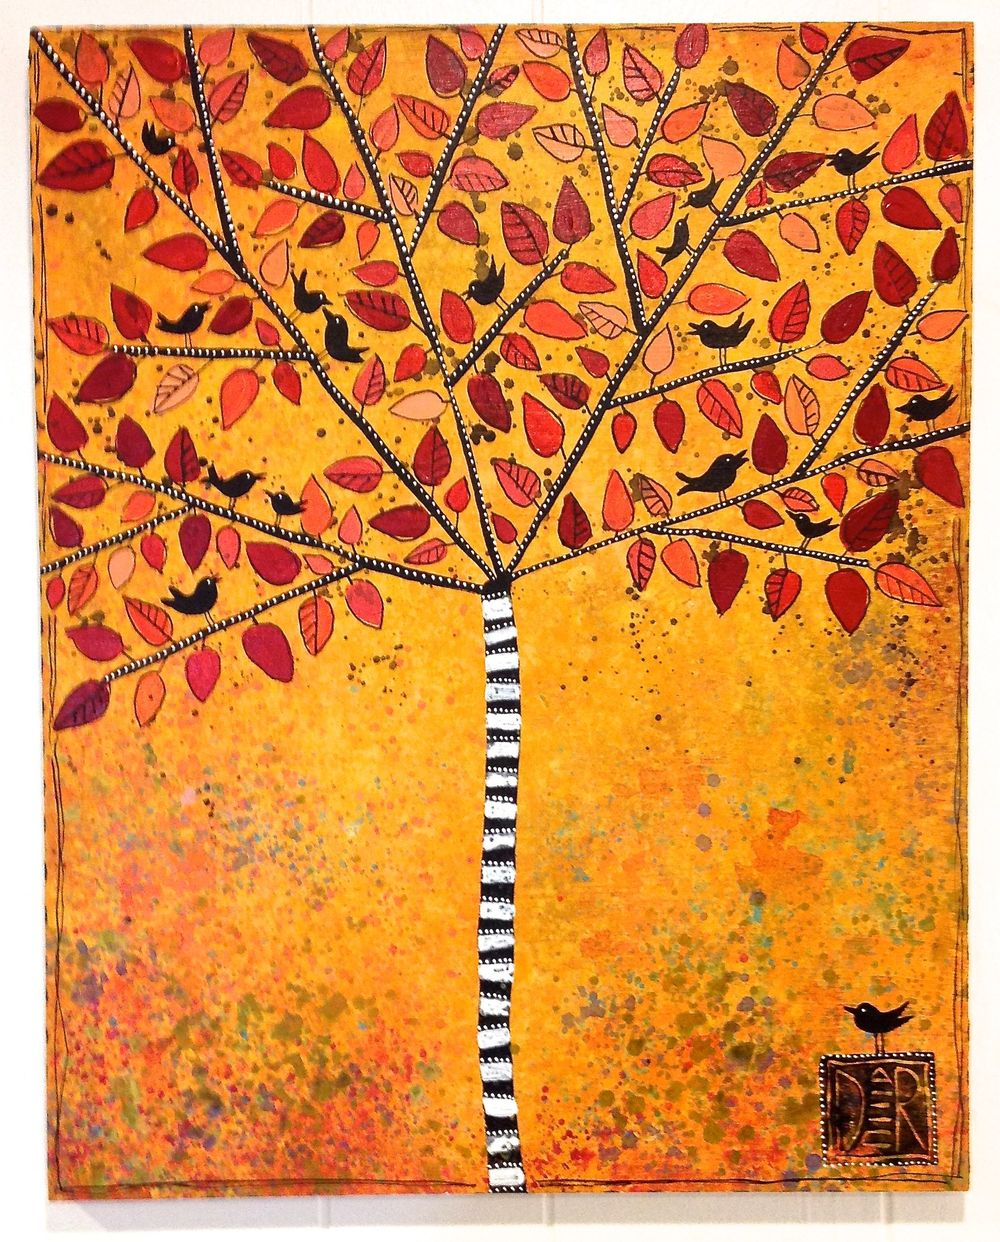 Gold Zebra Tree, 16x20""